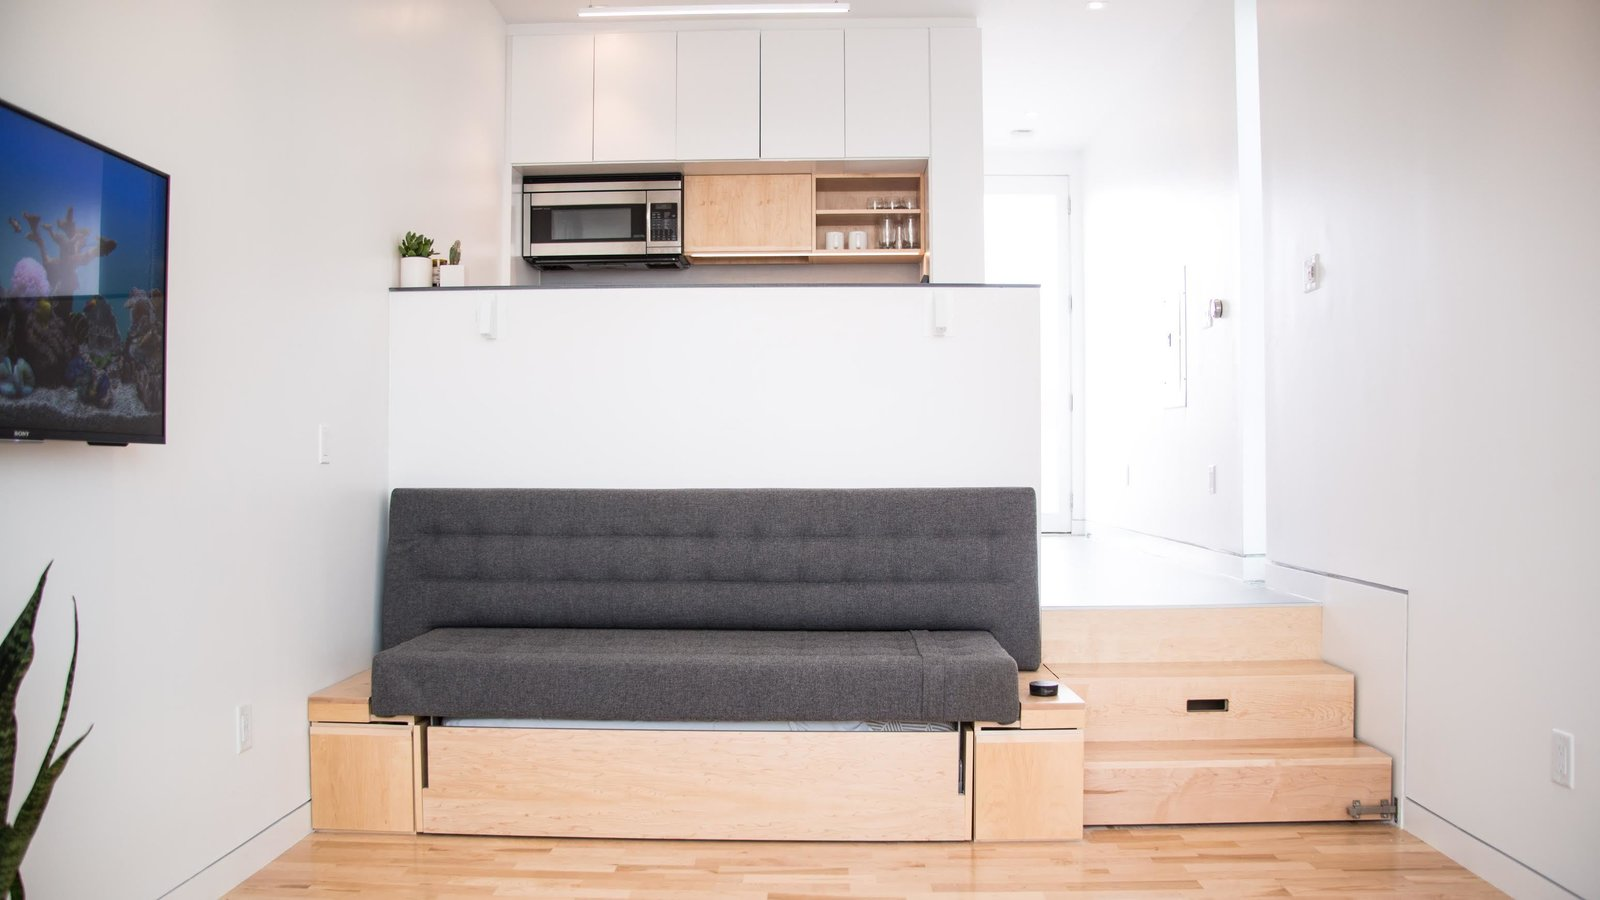 Living Room, Sofa, Light Hardwood Floor, and Storage The sofa converts to a queen-size bed complete with a Casper mattress. Bedding tucks away neatly in the storage below.  Photo 3 of 9 in Can These Tiny, Modular Smart Homes Relieve the Demand For Affordable Housing?